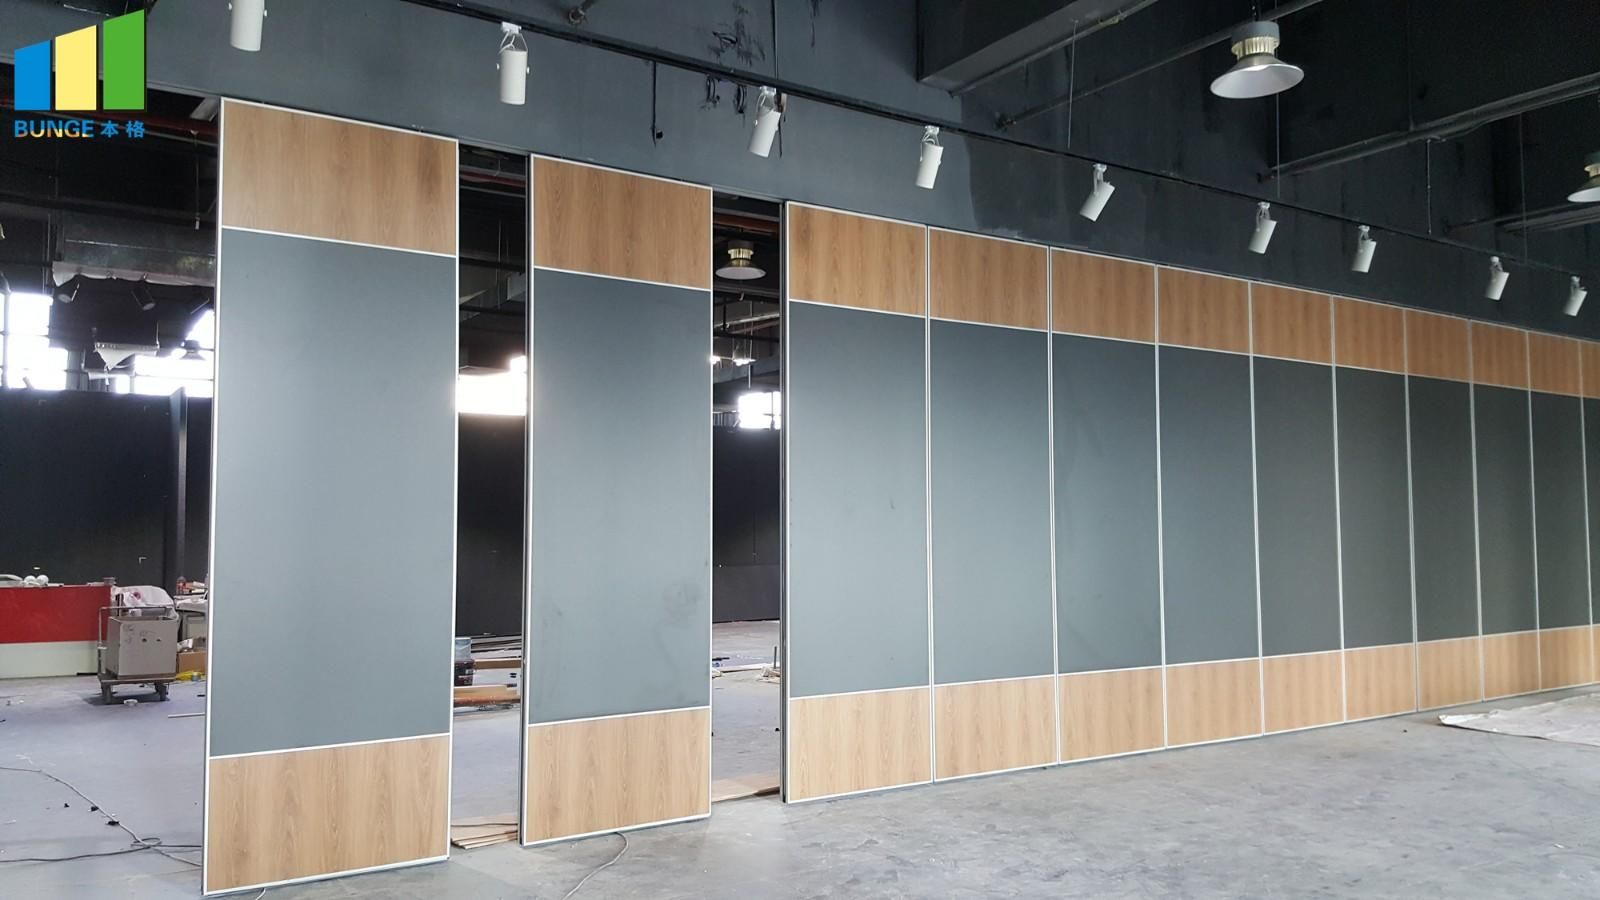 Bunge-Soundproof Partition Wall Manufacture | Mdf Board Aluminium-1